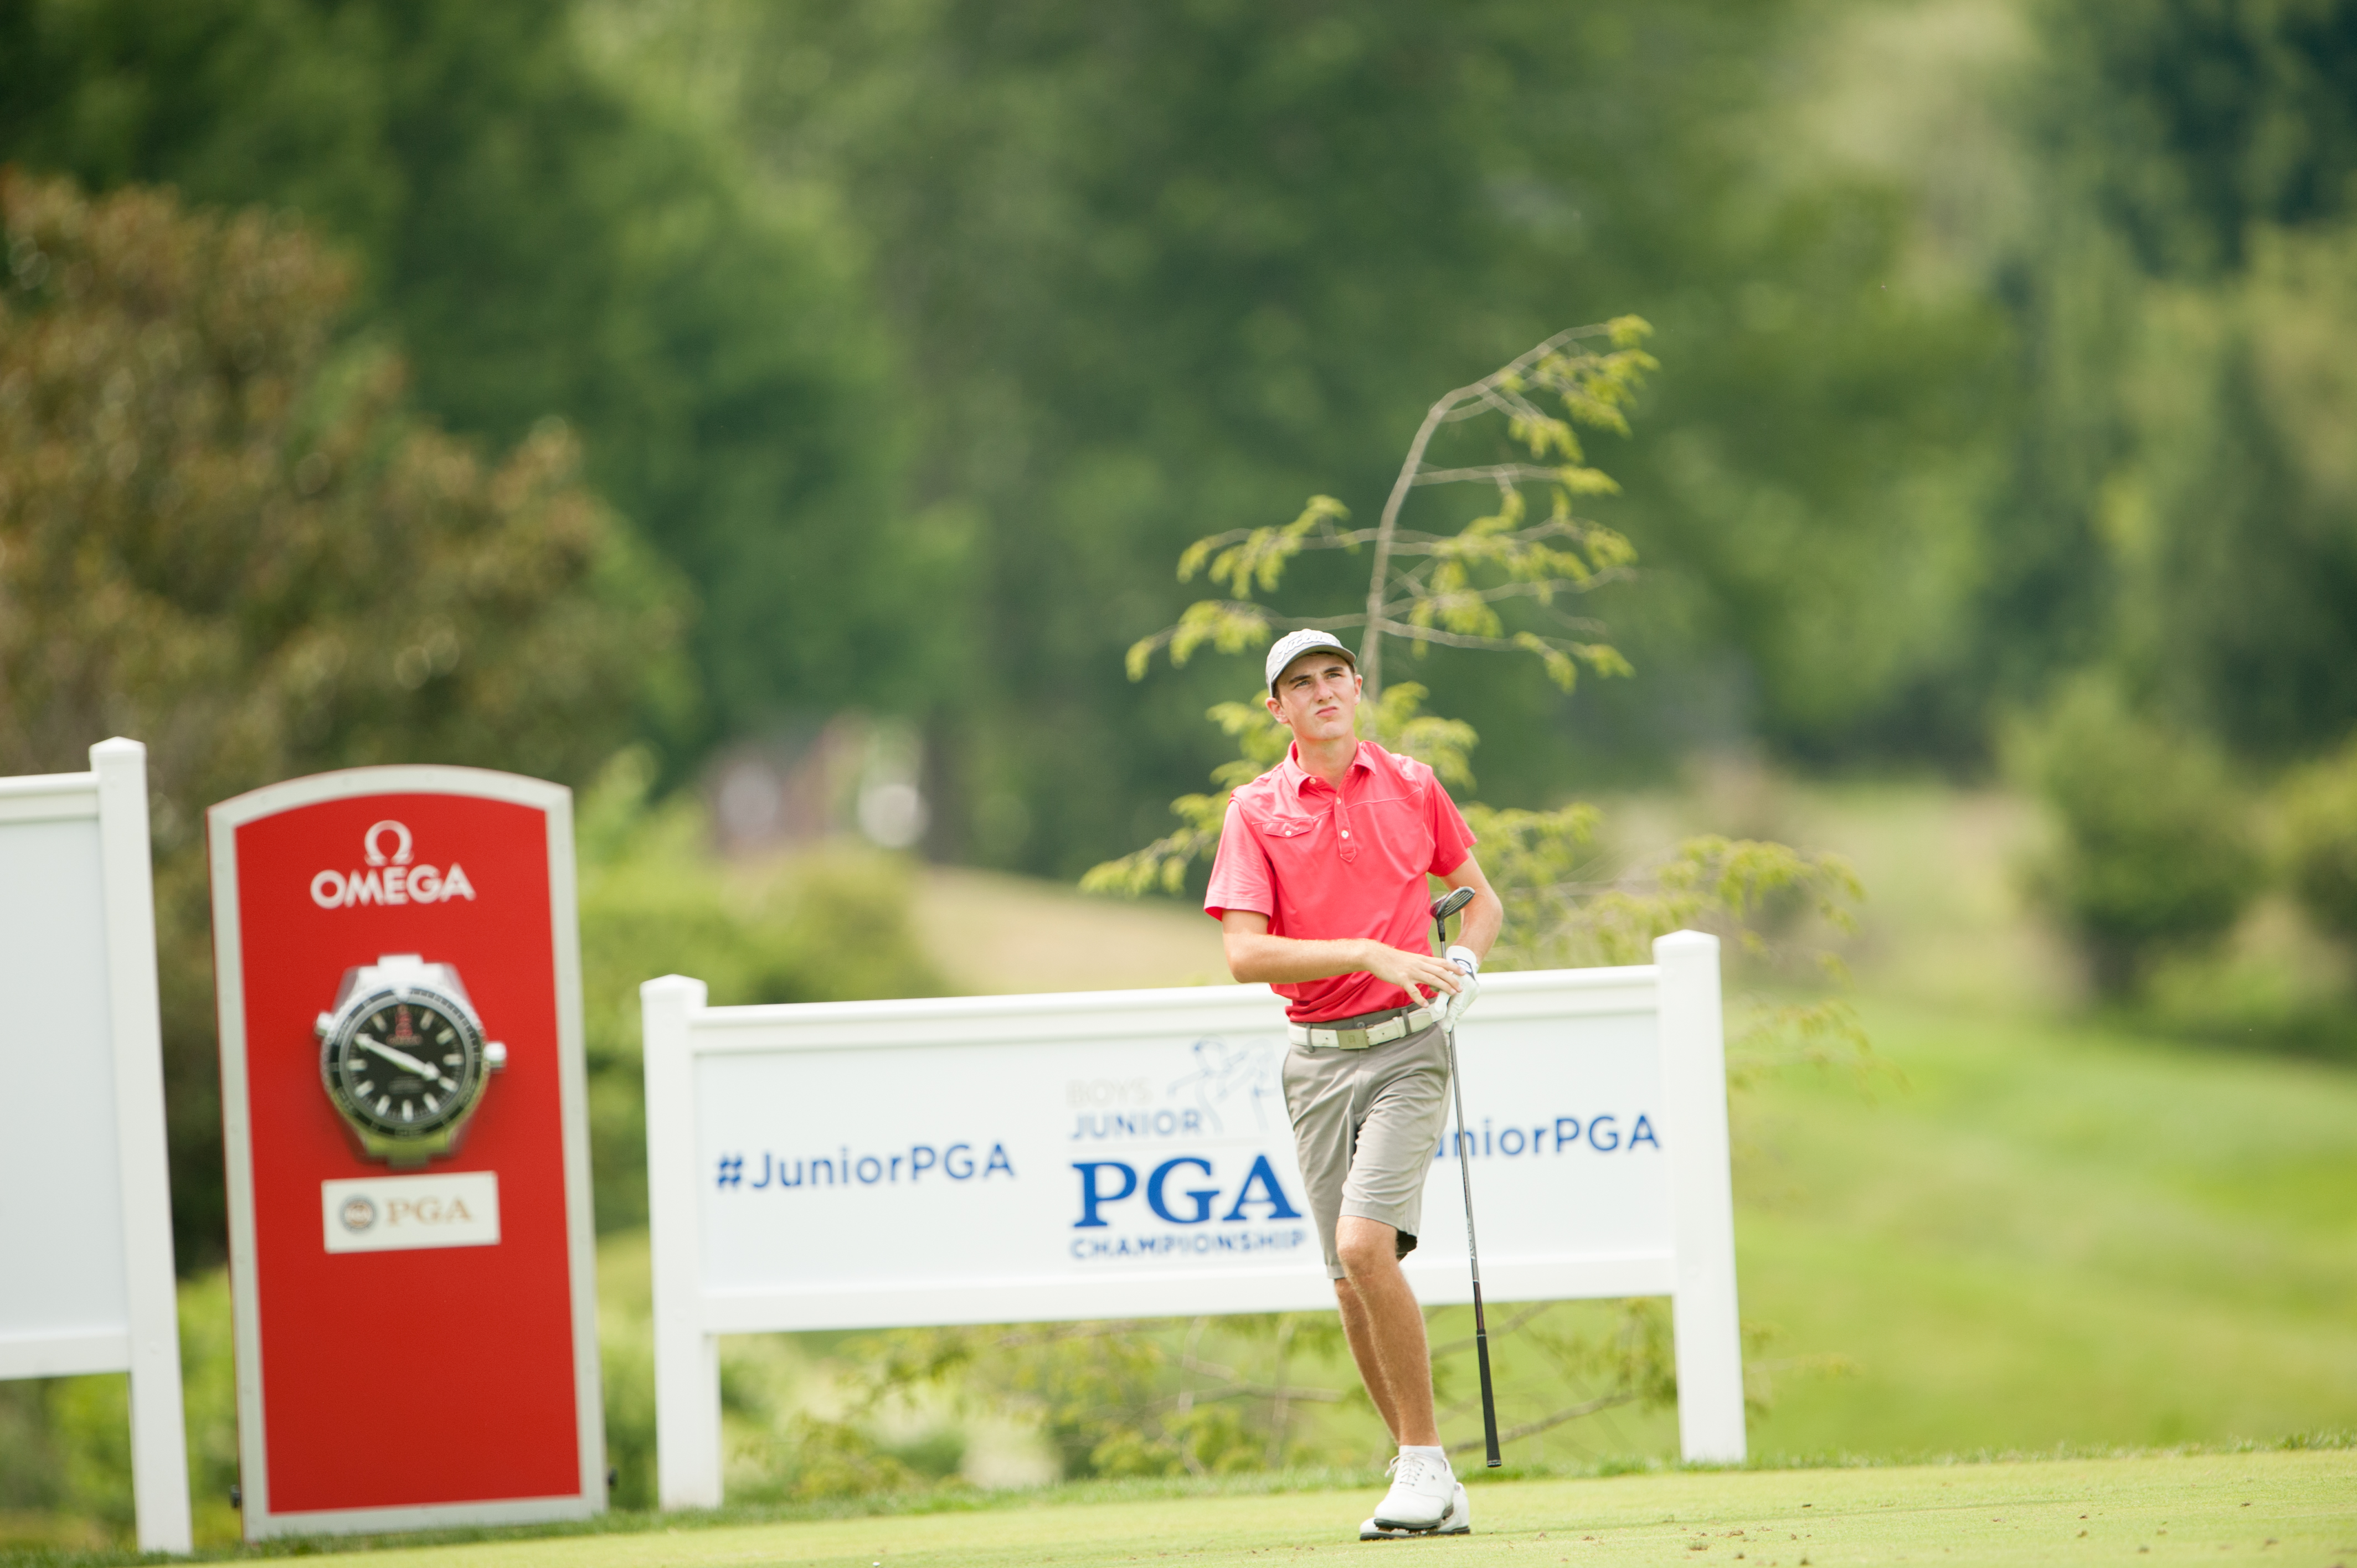 15-Year Old Dawson Ovard's First Round Record 64 Sets Blistering Pace at 42nd Boys Junior PGA Championship